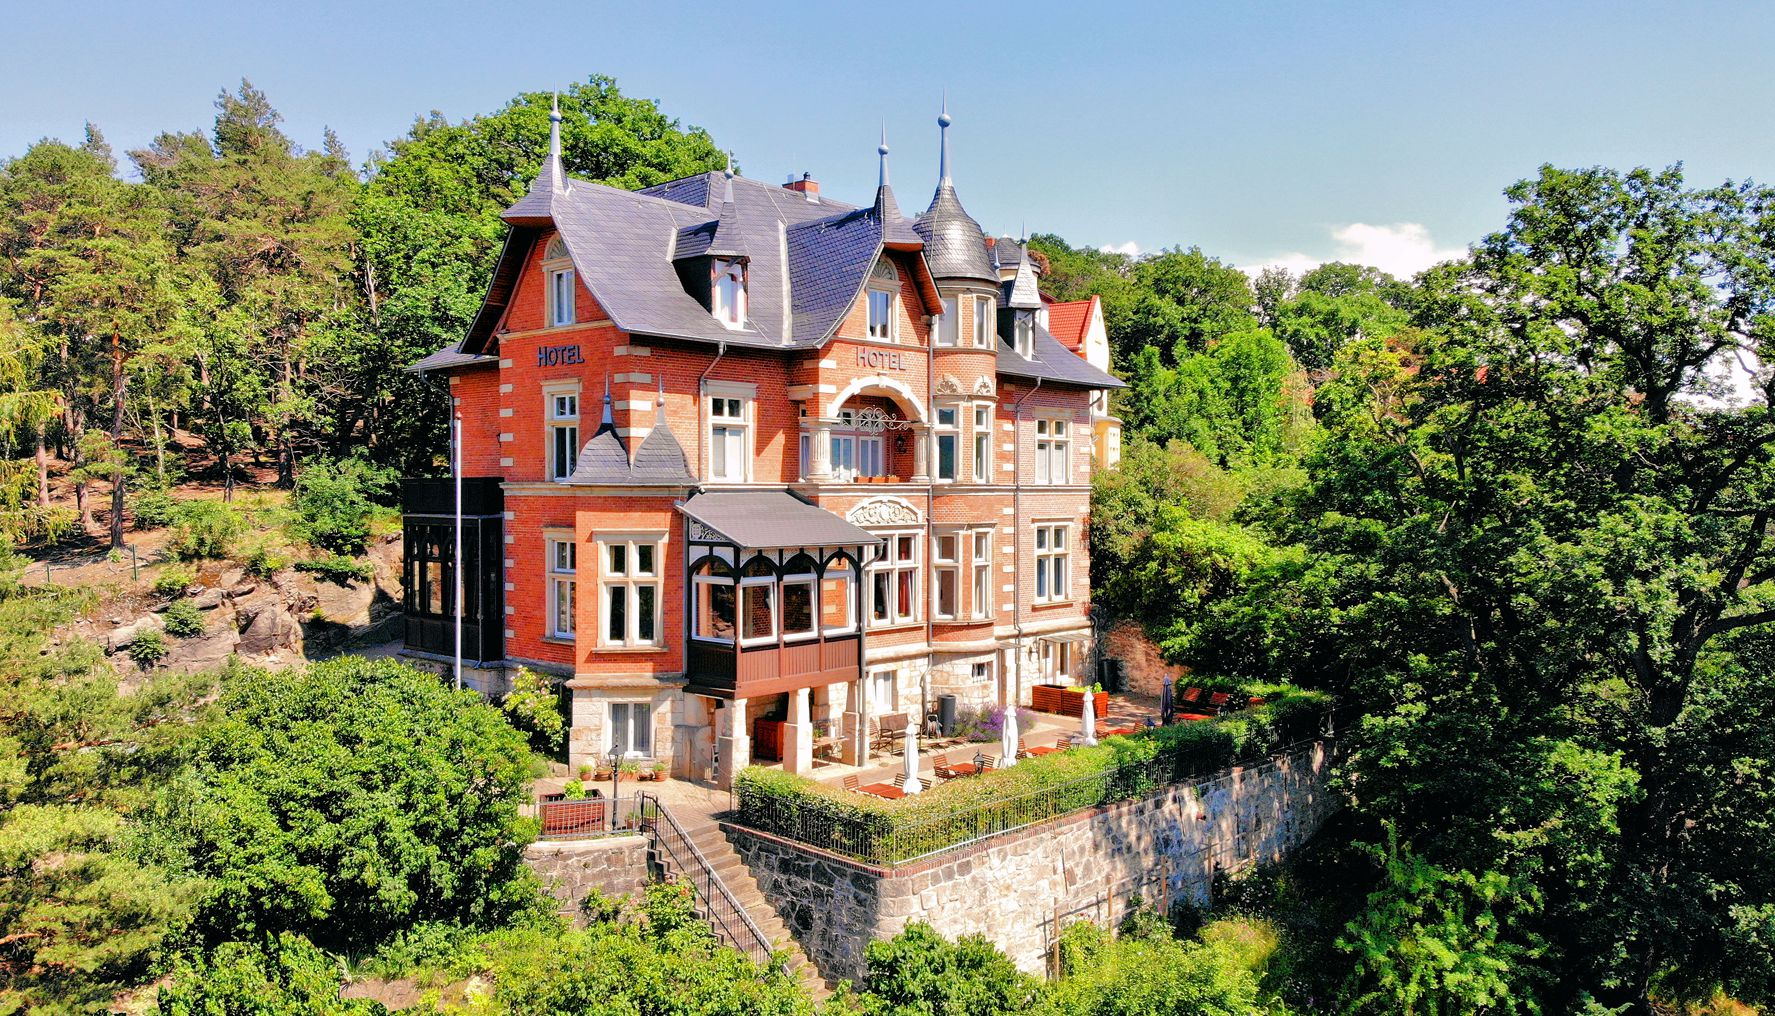 images/slideshow/sl001_new.jpg